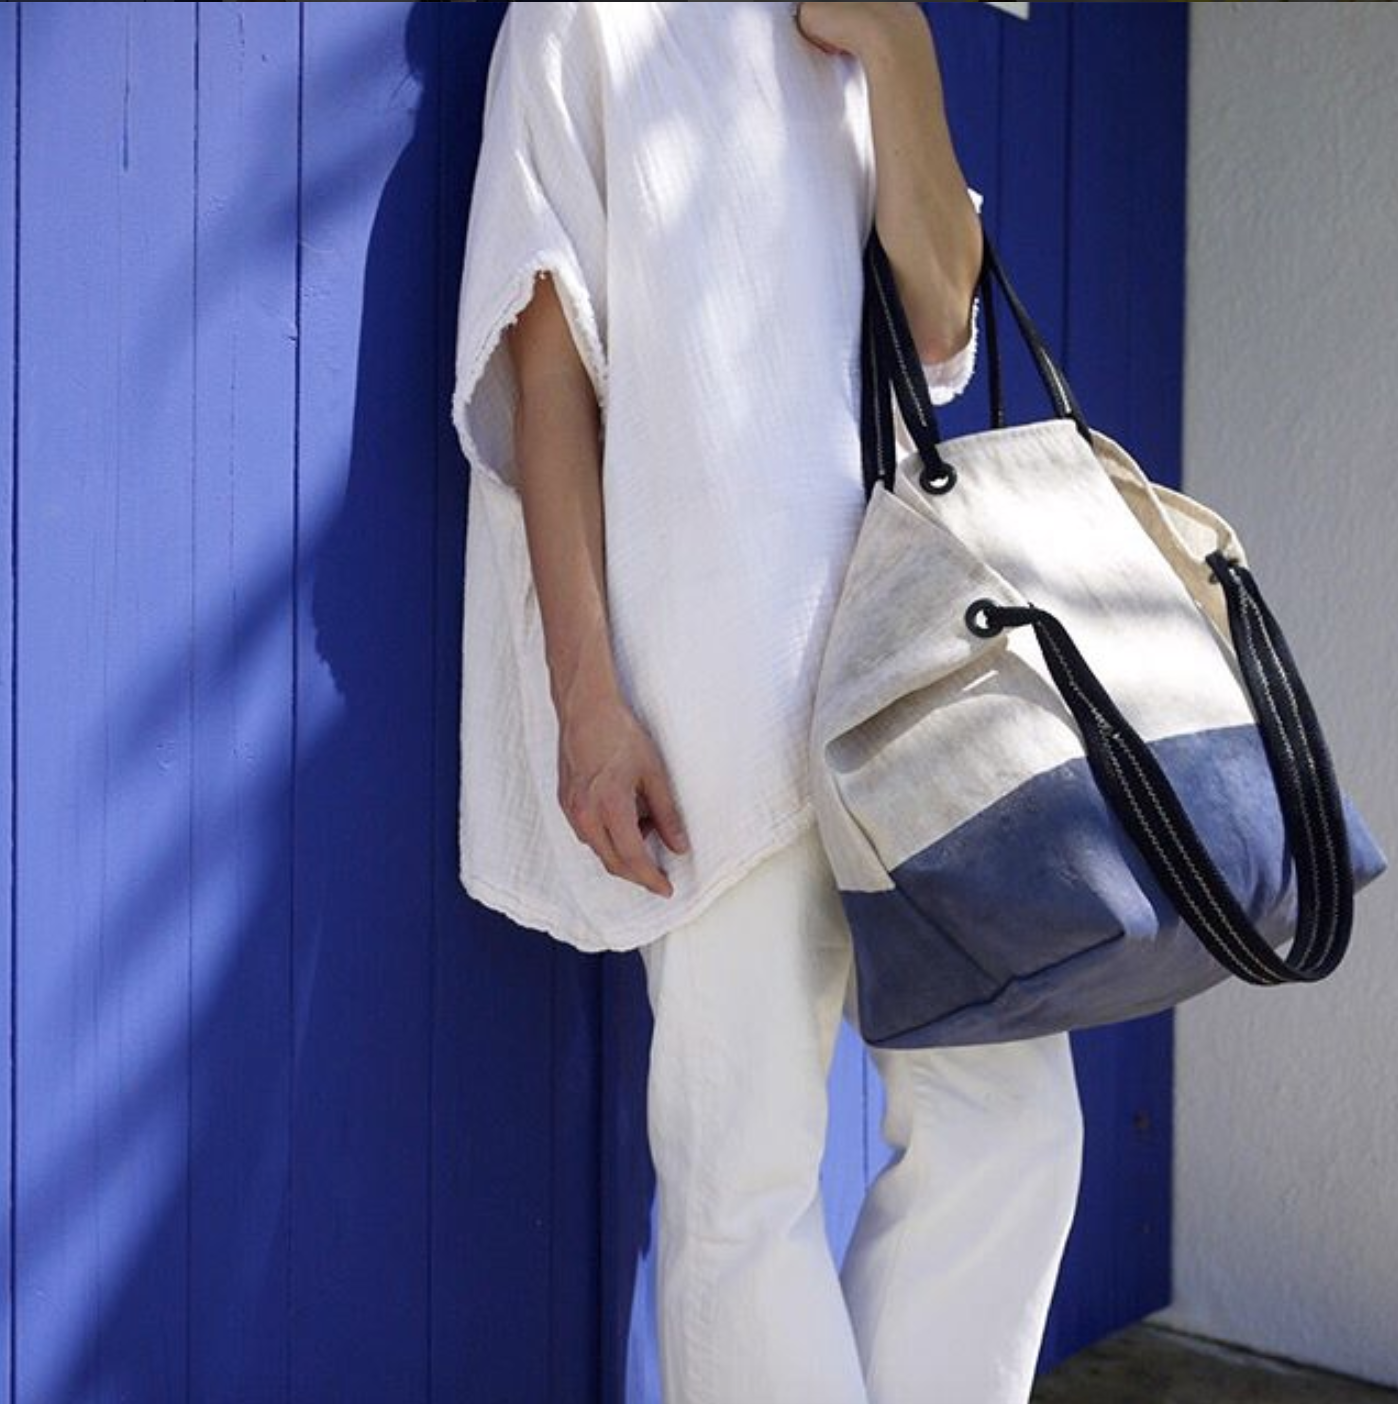 For the Recycling Champ - This day-to-night Cornerstone HP Navy Bag from Rewilder is a must for any eco fashionista. They'll be impressed with how this chic, creative brand diverts beer filters and old climbing ropes headed for the landfill and reintroduces them to the world as stunning bags – it's repurposing at its finest.